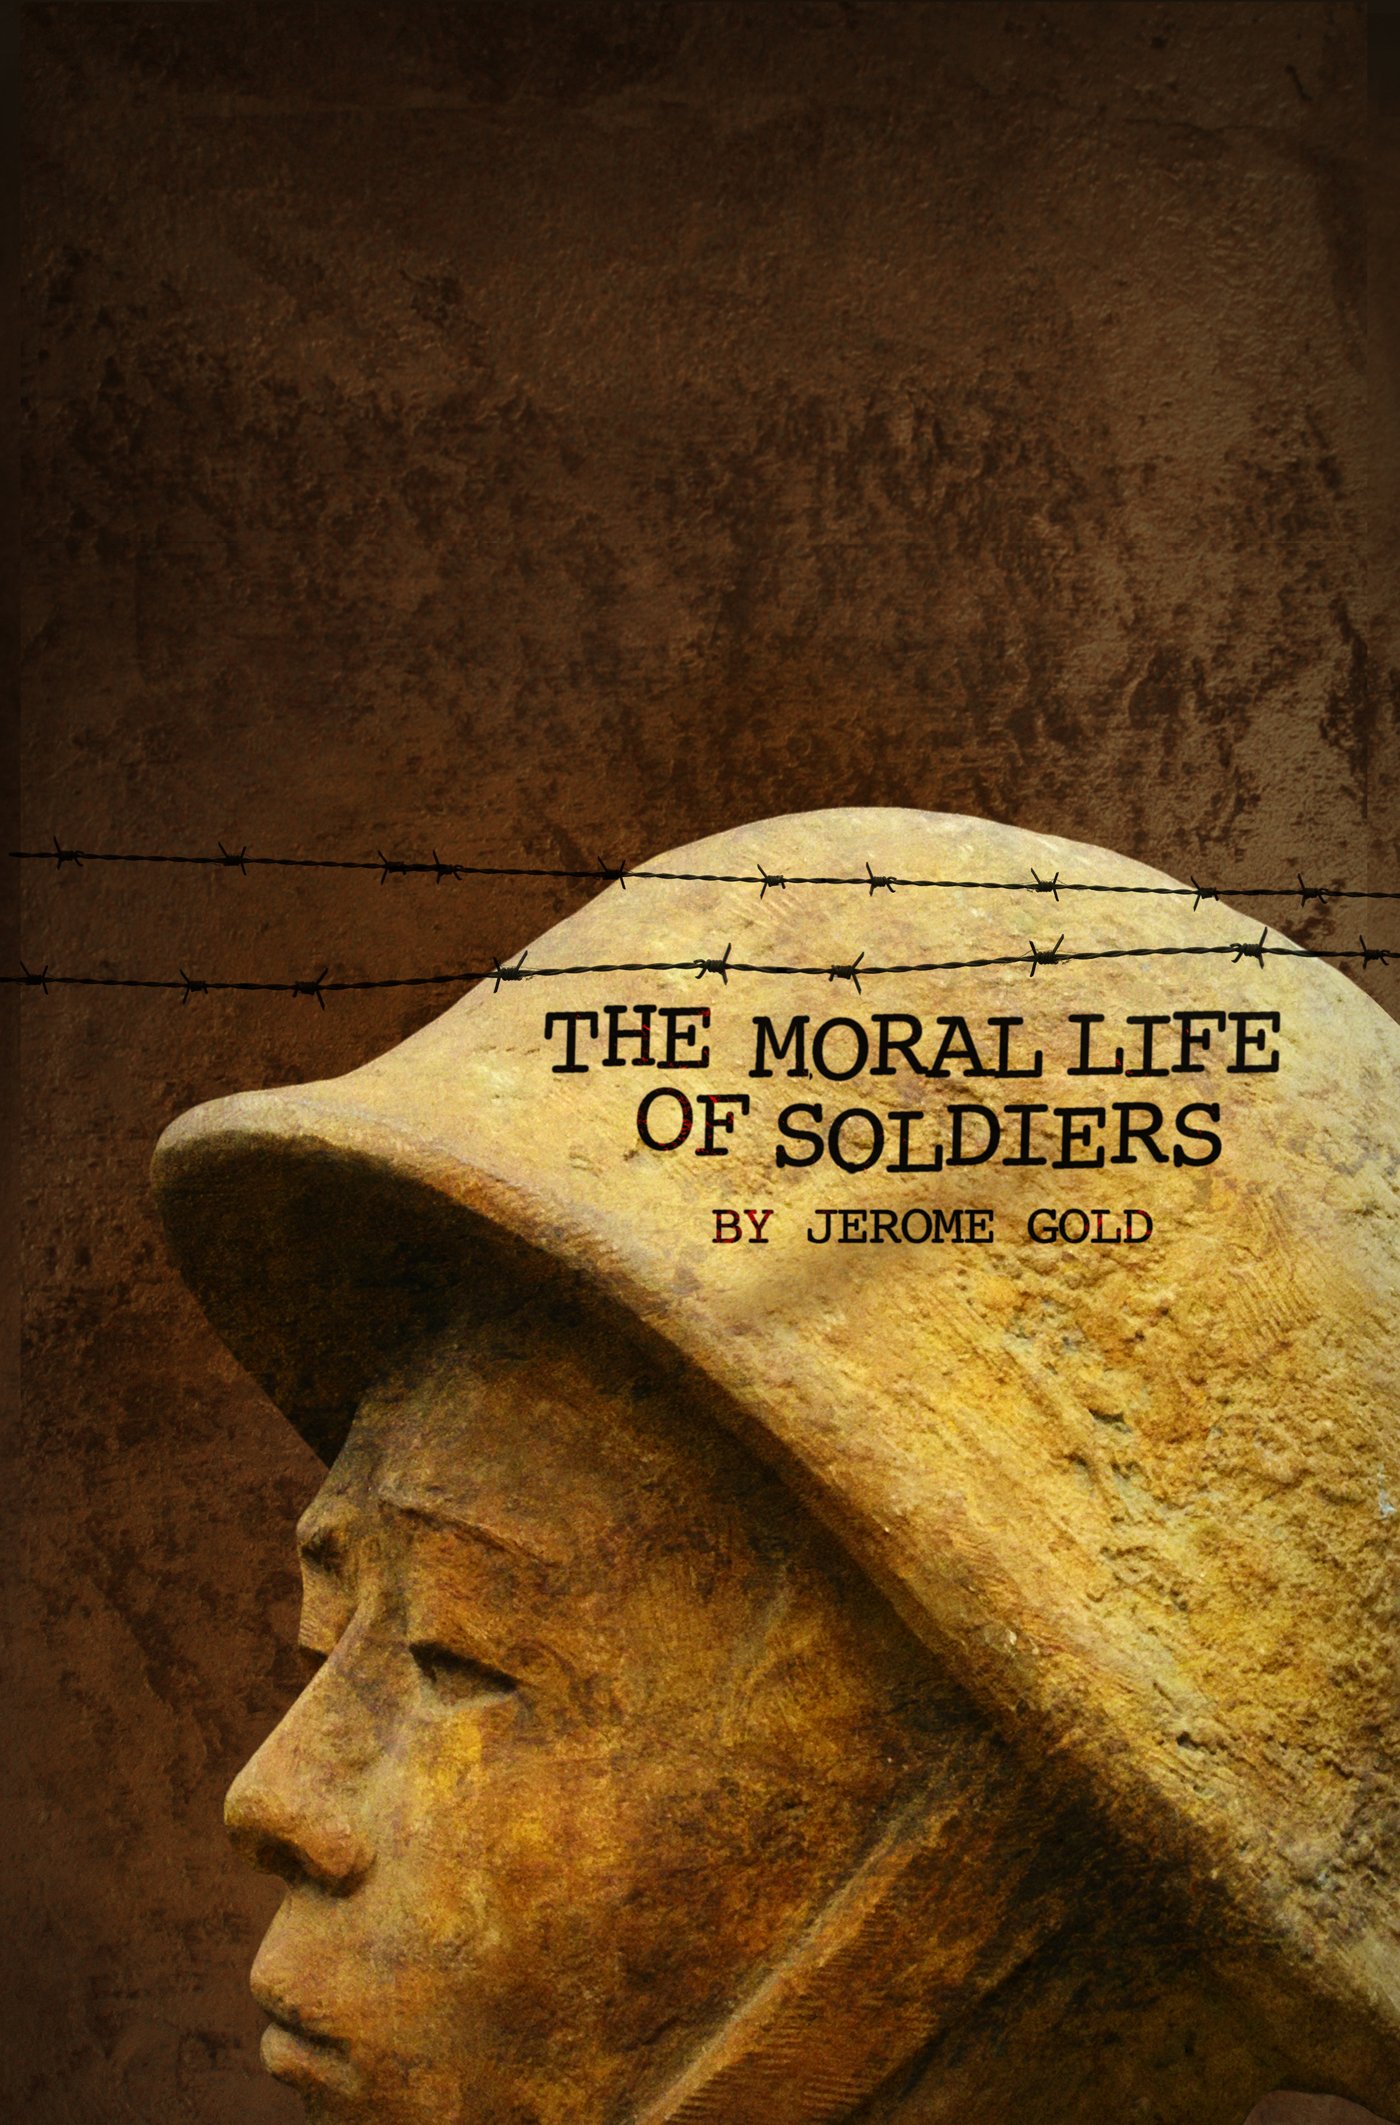 The Moral Life of Soldiers